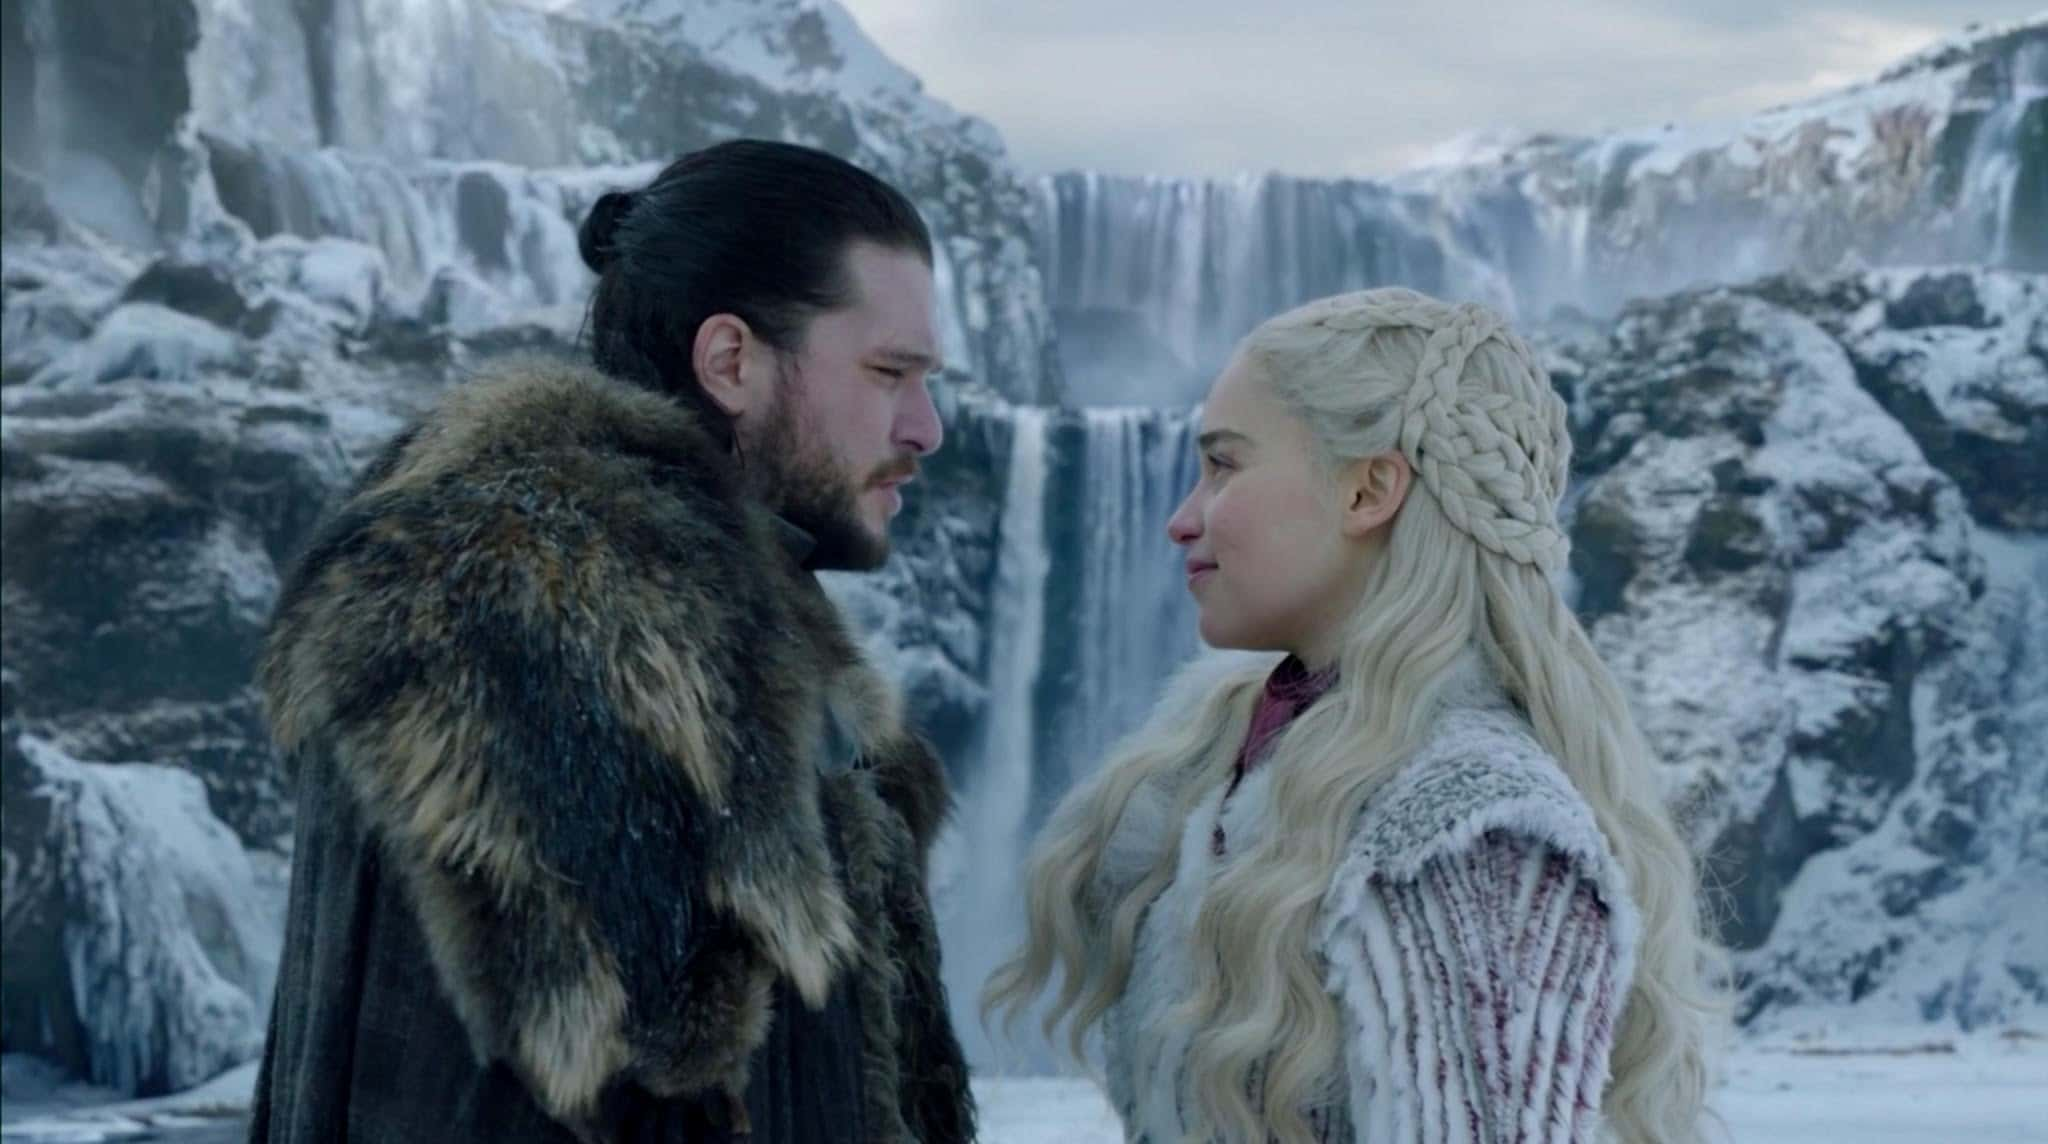 John Snow and Daenerys Targaryen looking at each other in front of a snowy waterfall